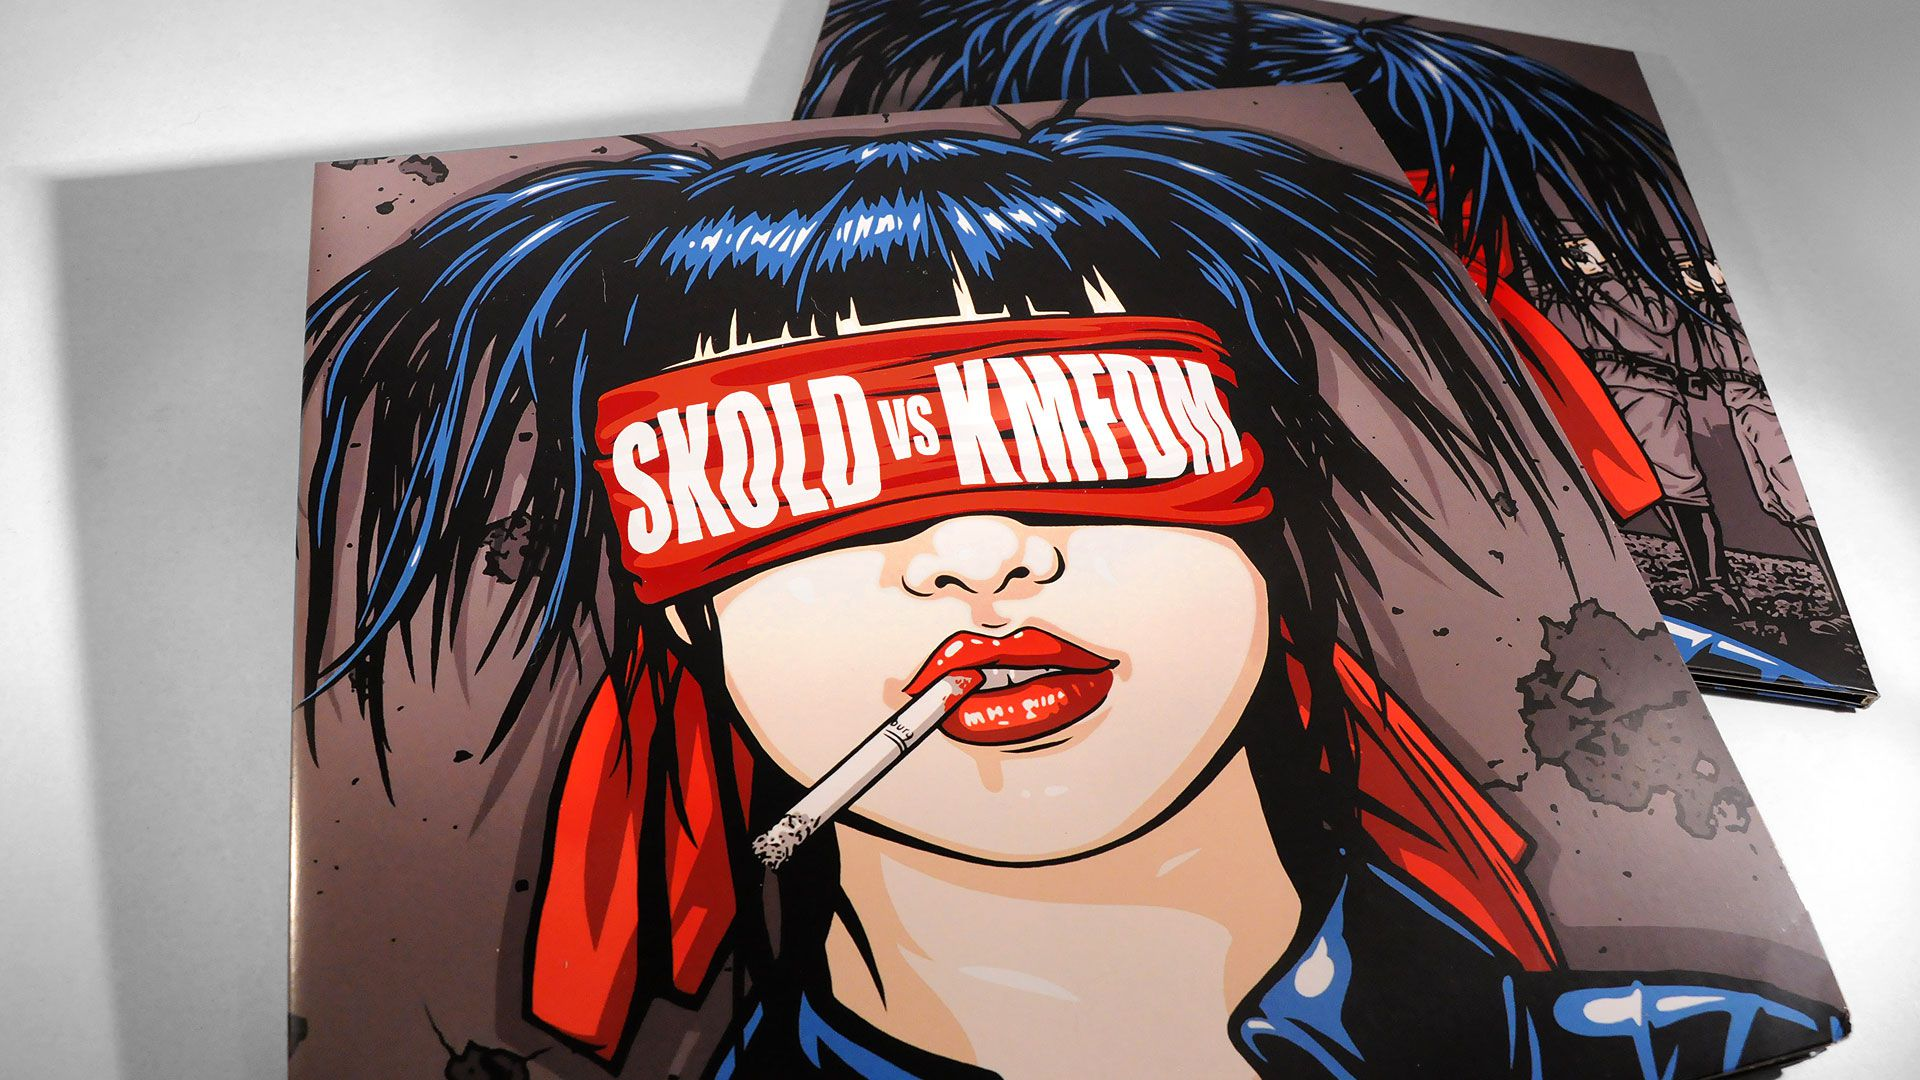 Skold Vs KMFDM High Quality Background on Wallpapers Vista